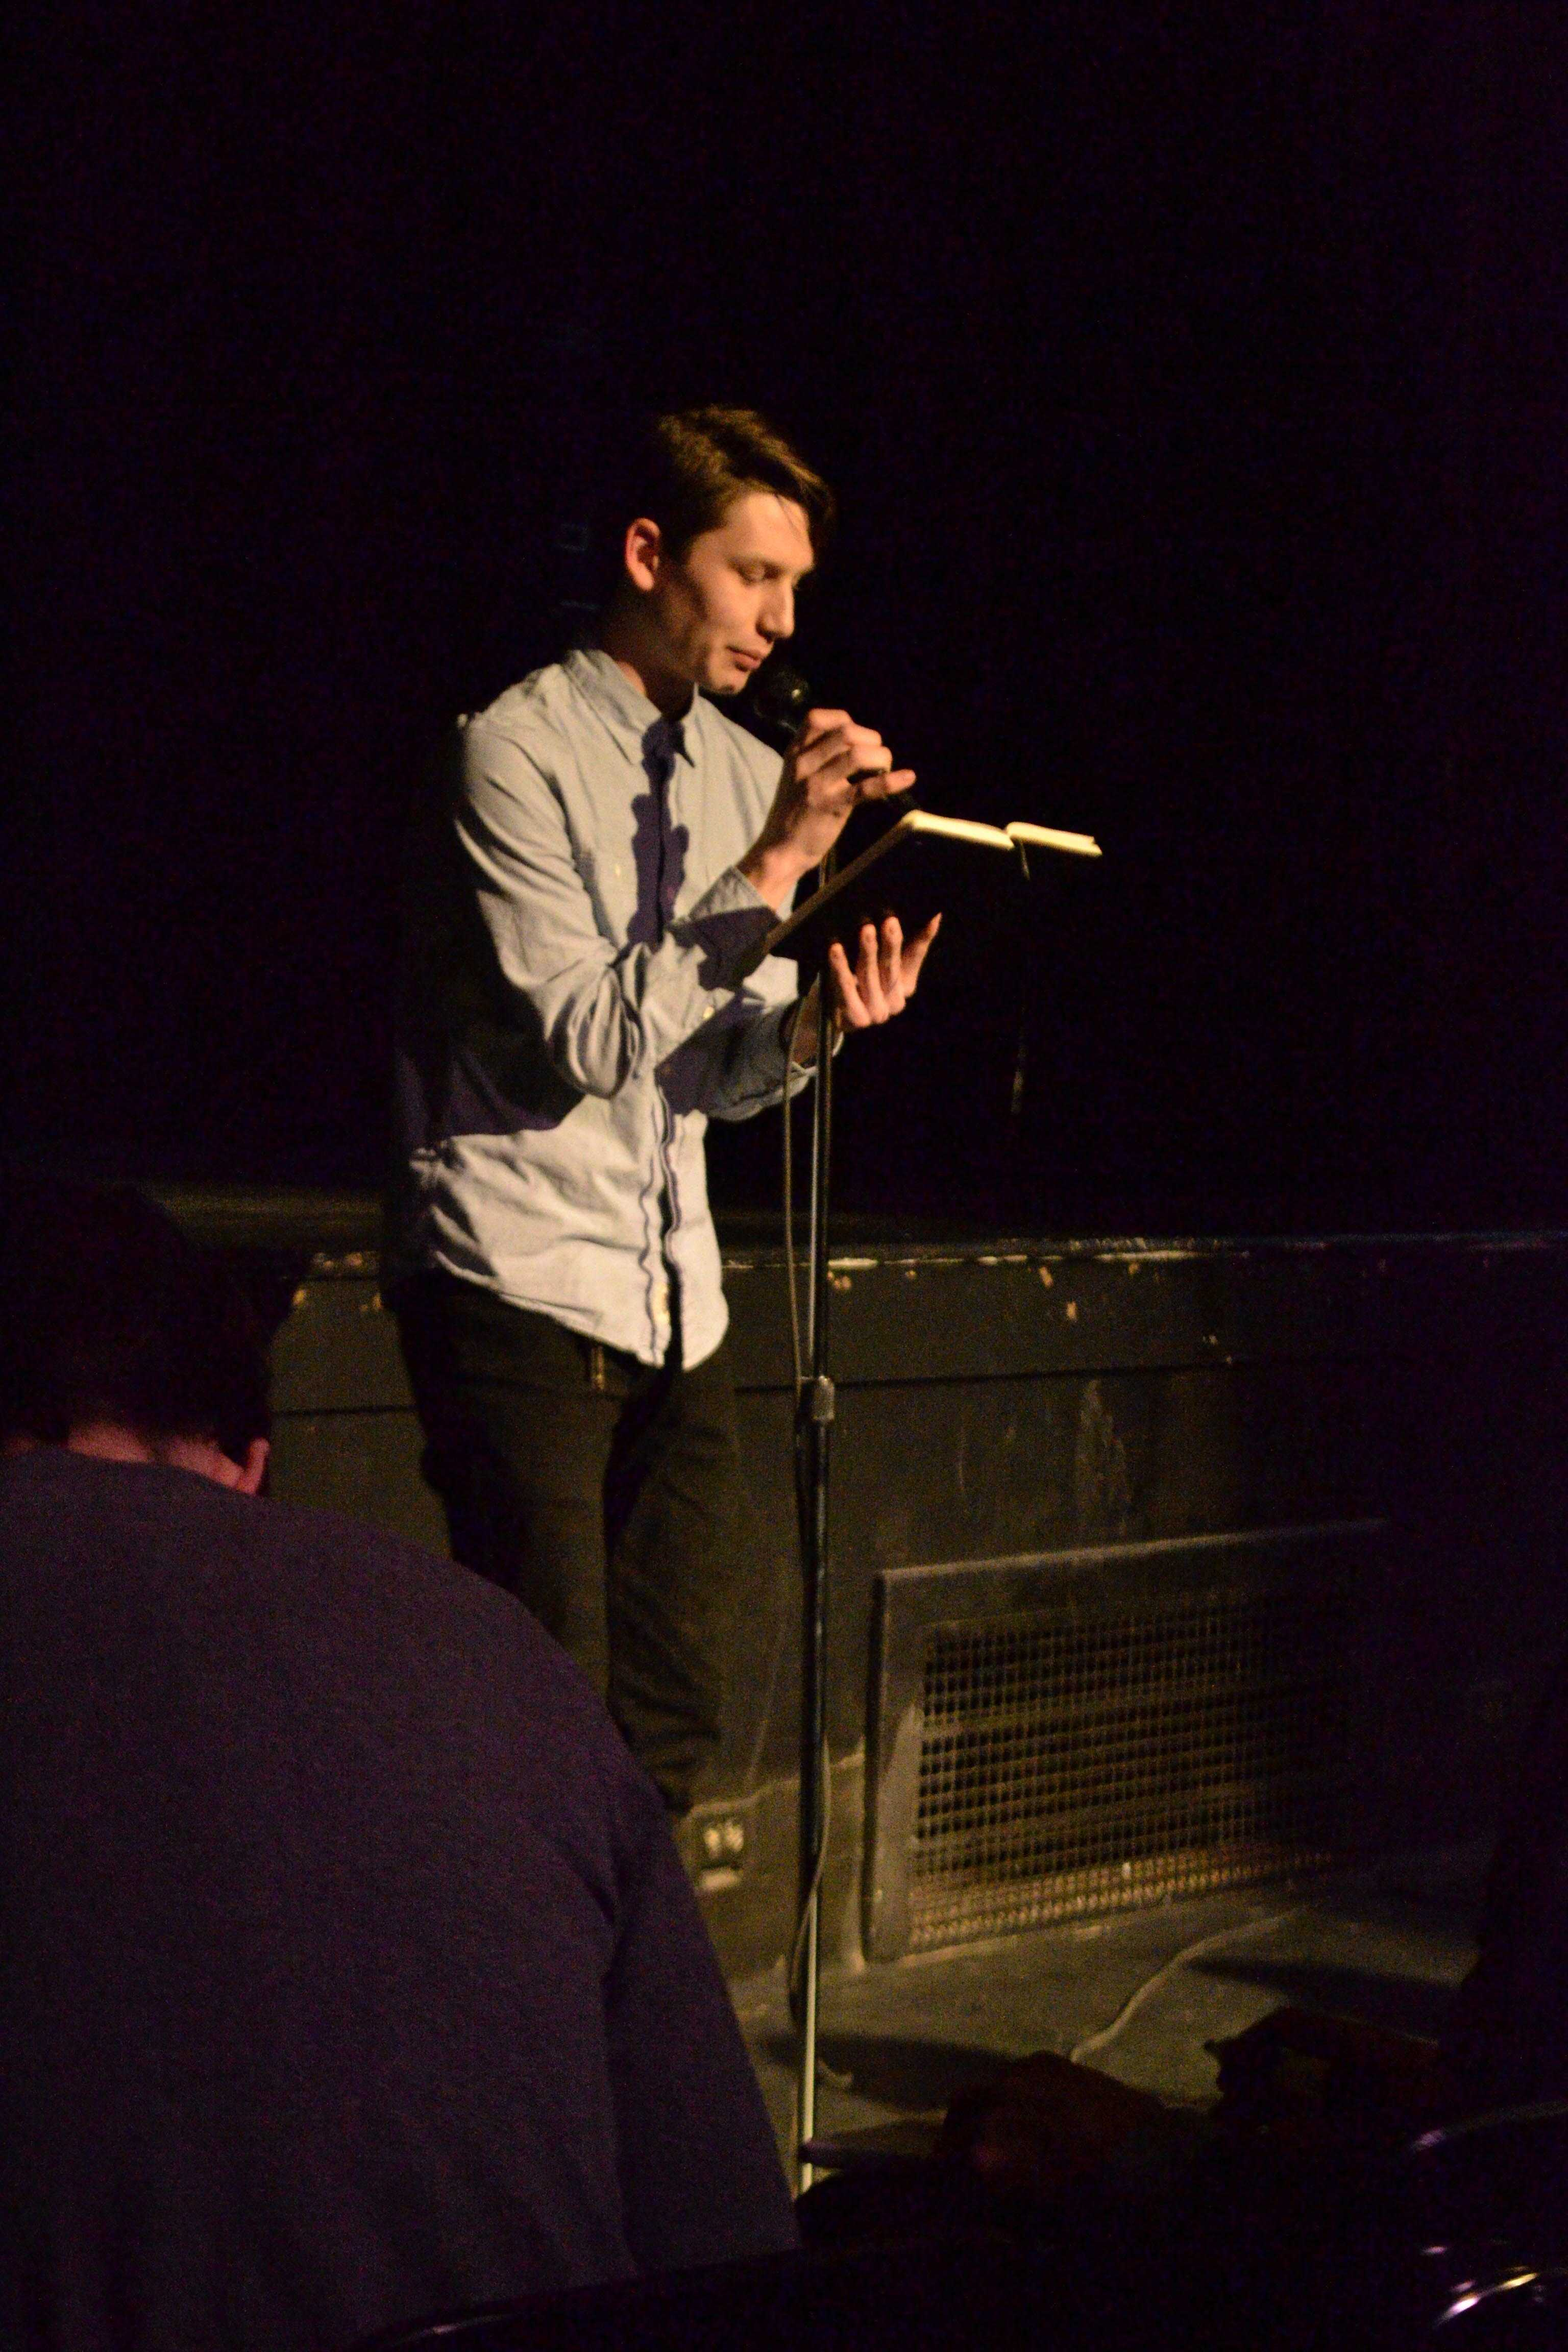 Hannon Hylkema reads at the first round of the poetry slam preliminaries